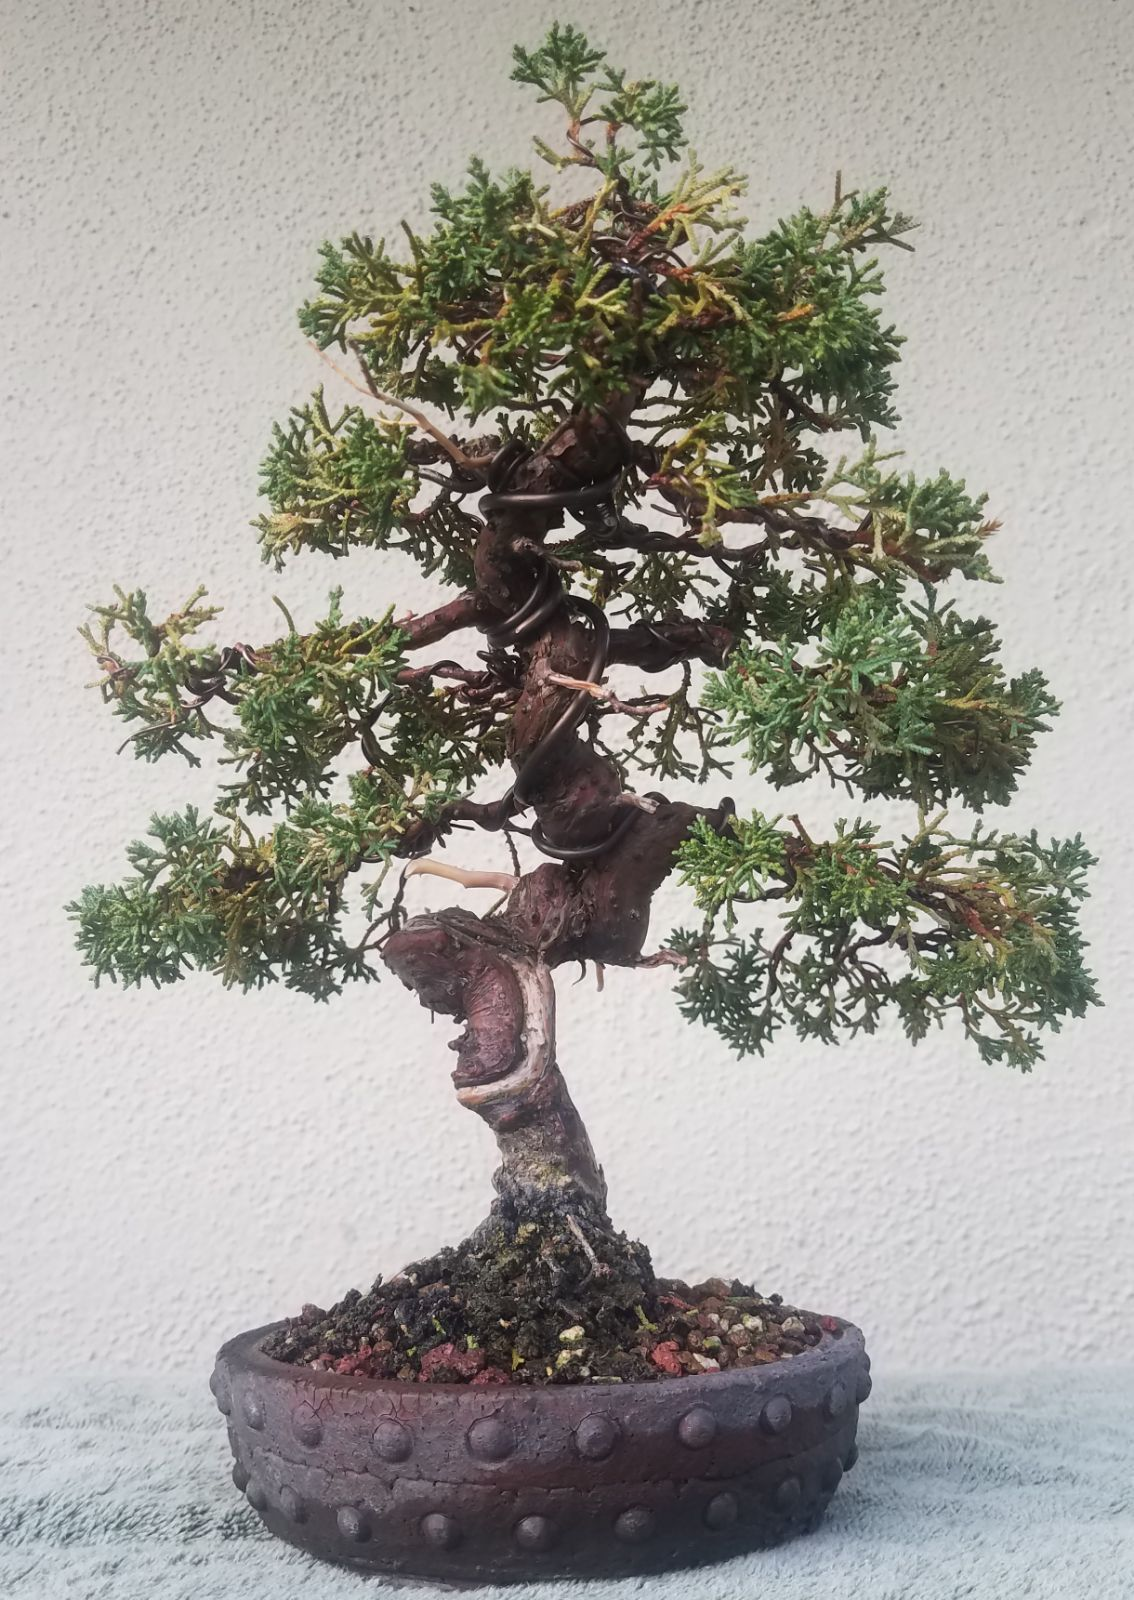 Wondrous Picture 4 I Did Some Minor Pruning And Wiring On My On My Shohin Wiring Digital Resources Funapmognl